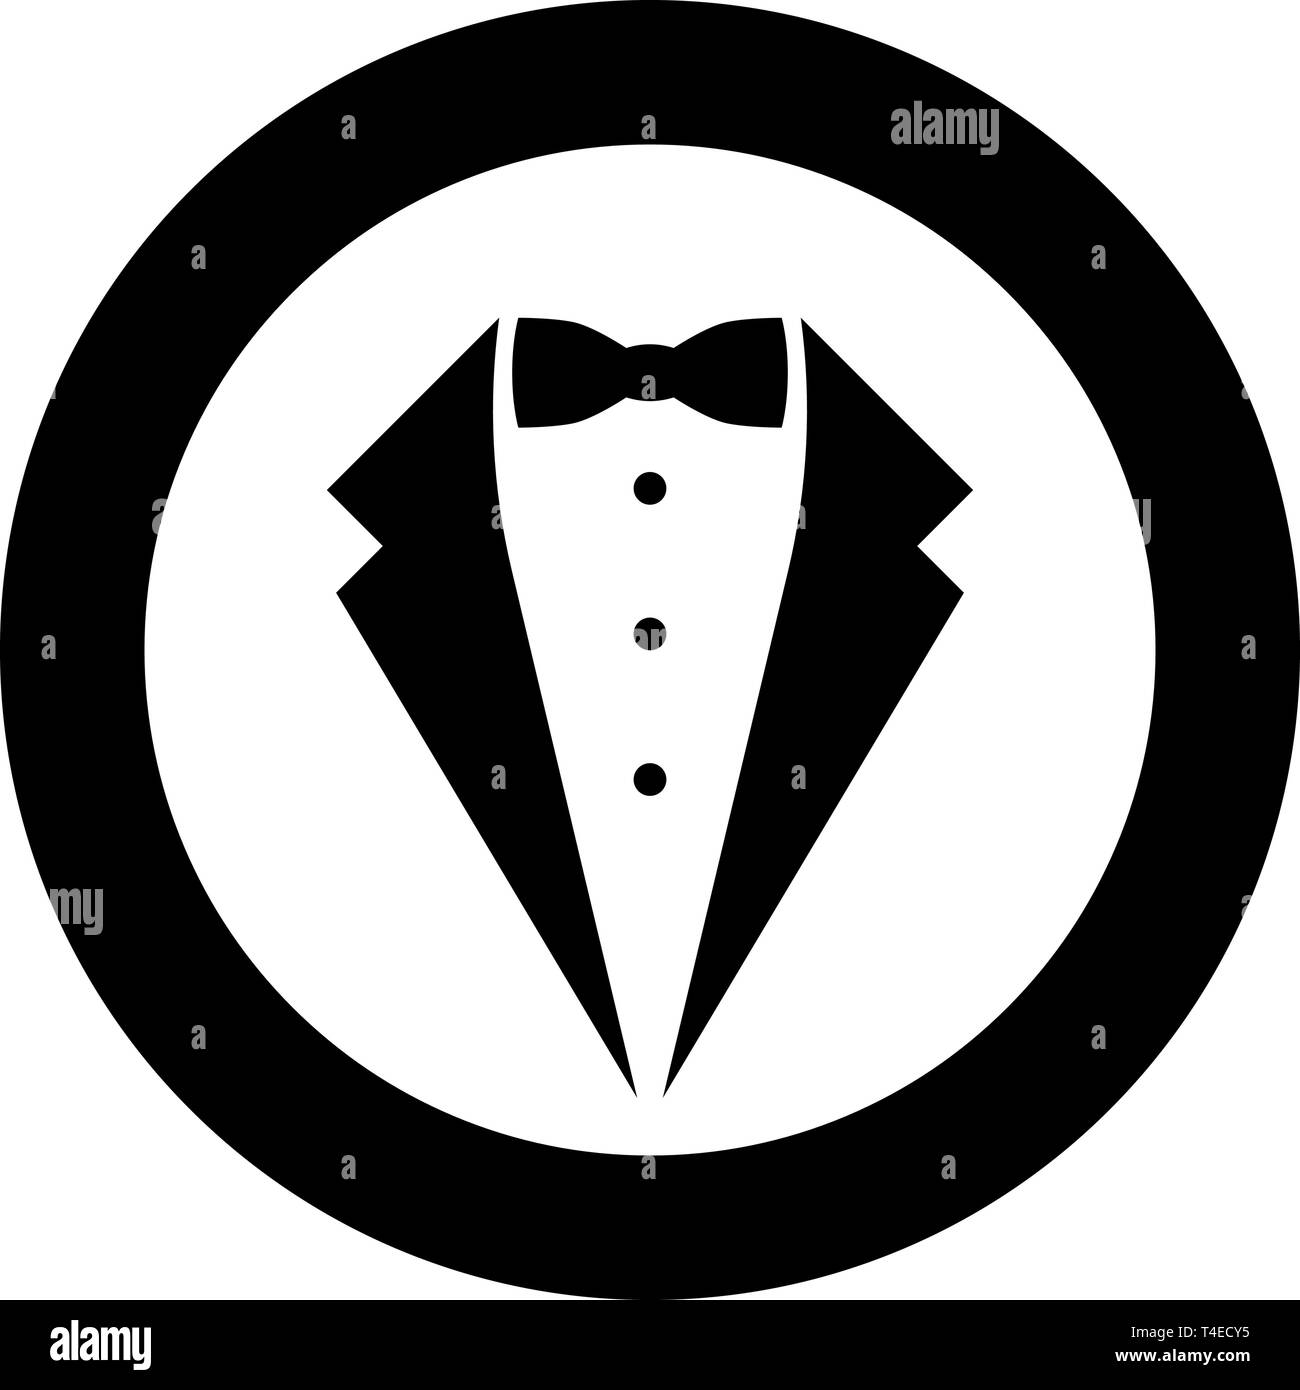 Symbol service dinner jacket bow Tuxedo concept Tux sign Butler gentleman idea Waiter suit icon in circle round black color vector illustration flat - Stock Image